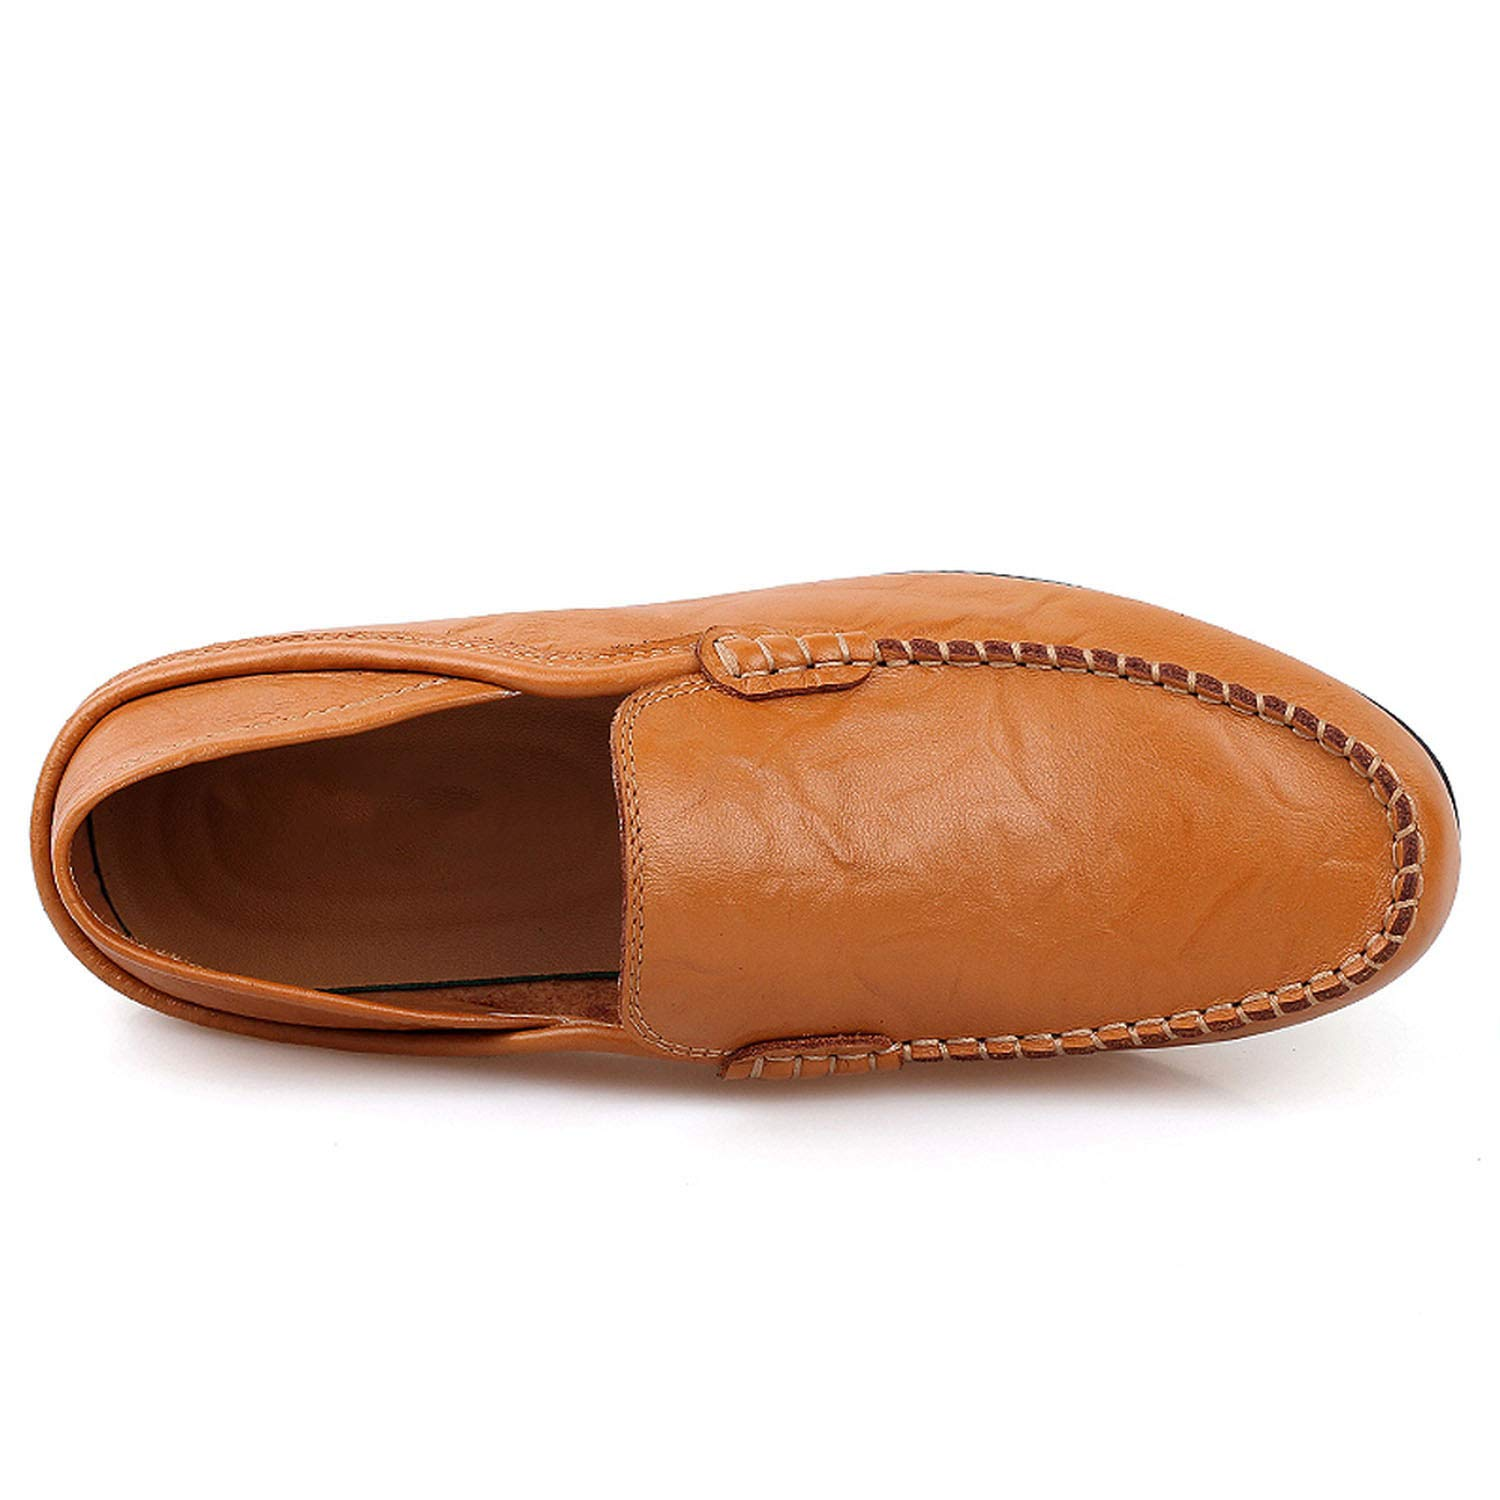 2018 Summer Sneakers Men Genuine Leather Casual Boat Loafers Flats Moccasins Slip On Footwear